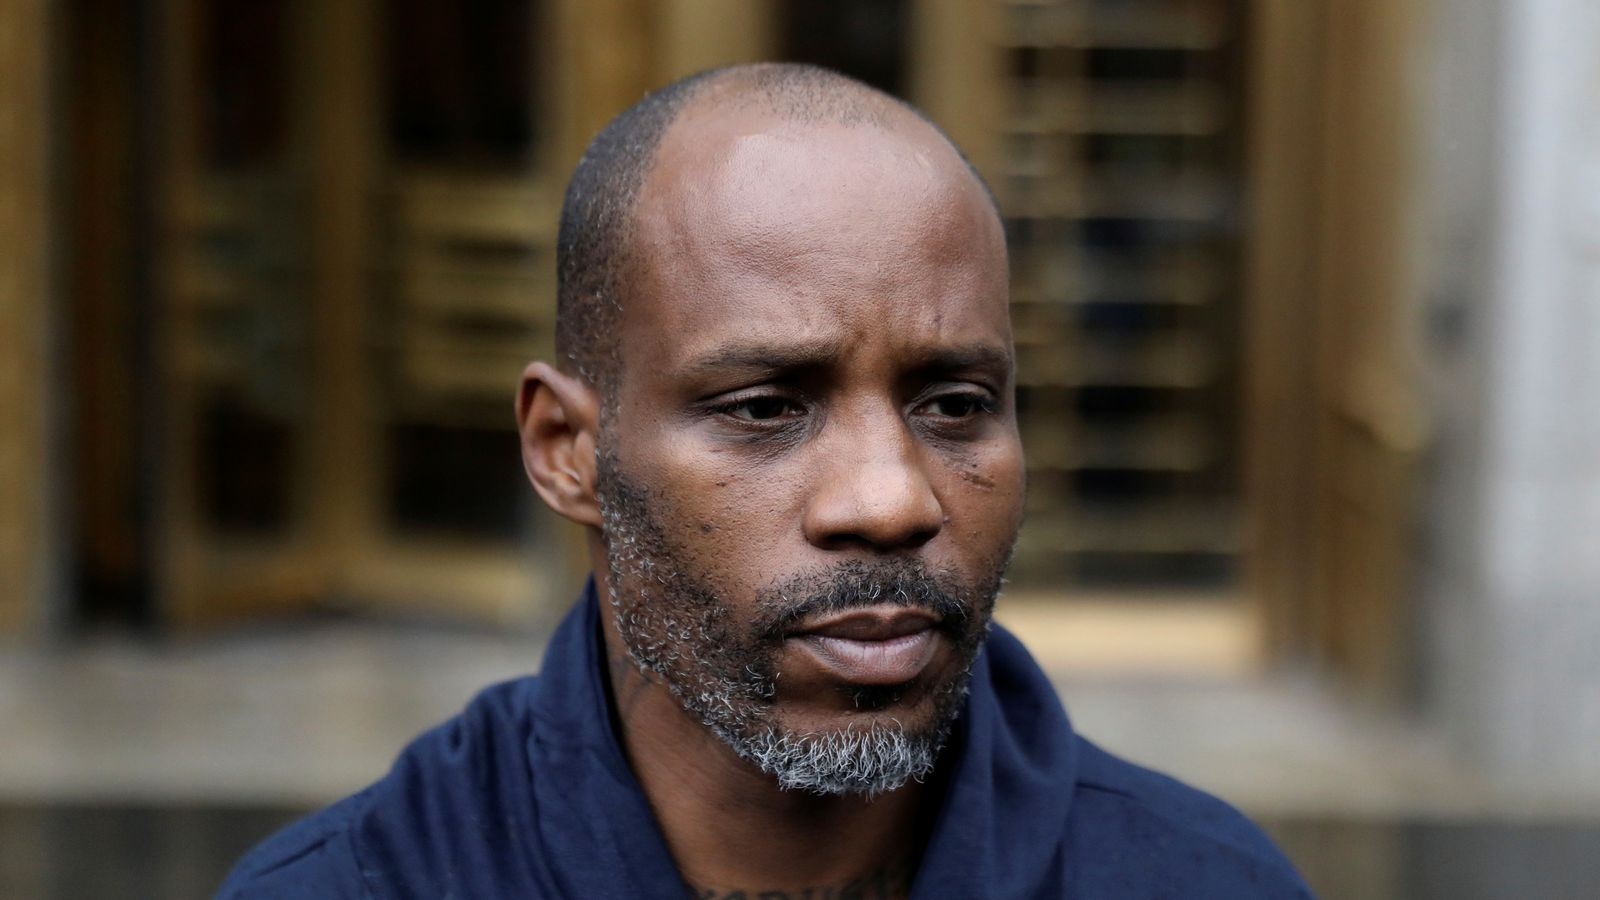 Rapper DMX plays judge hit track Slippin' before being ...